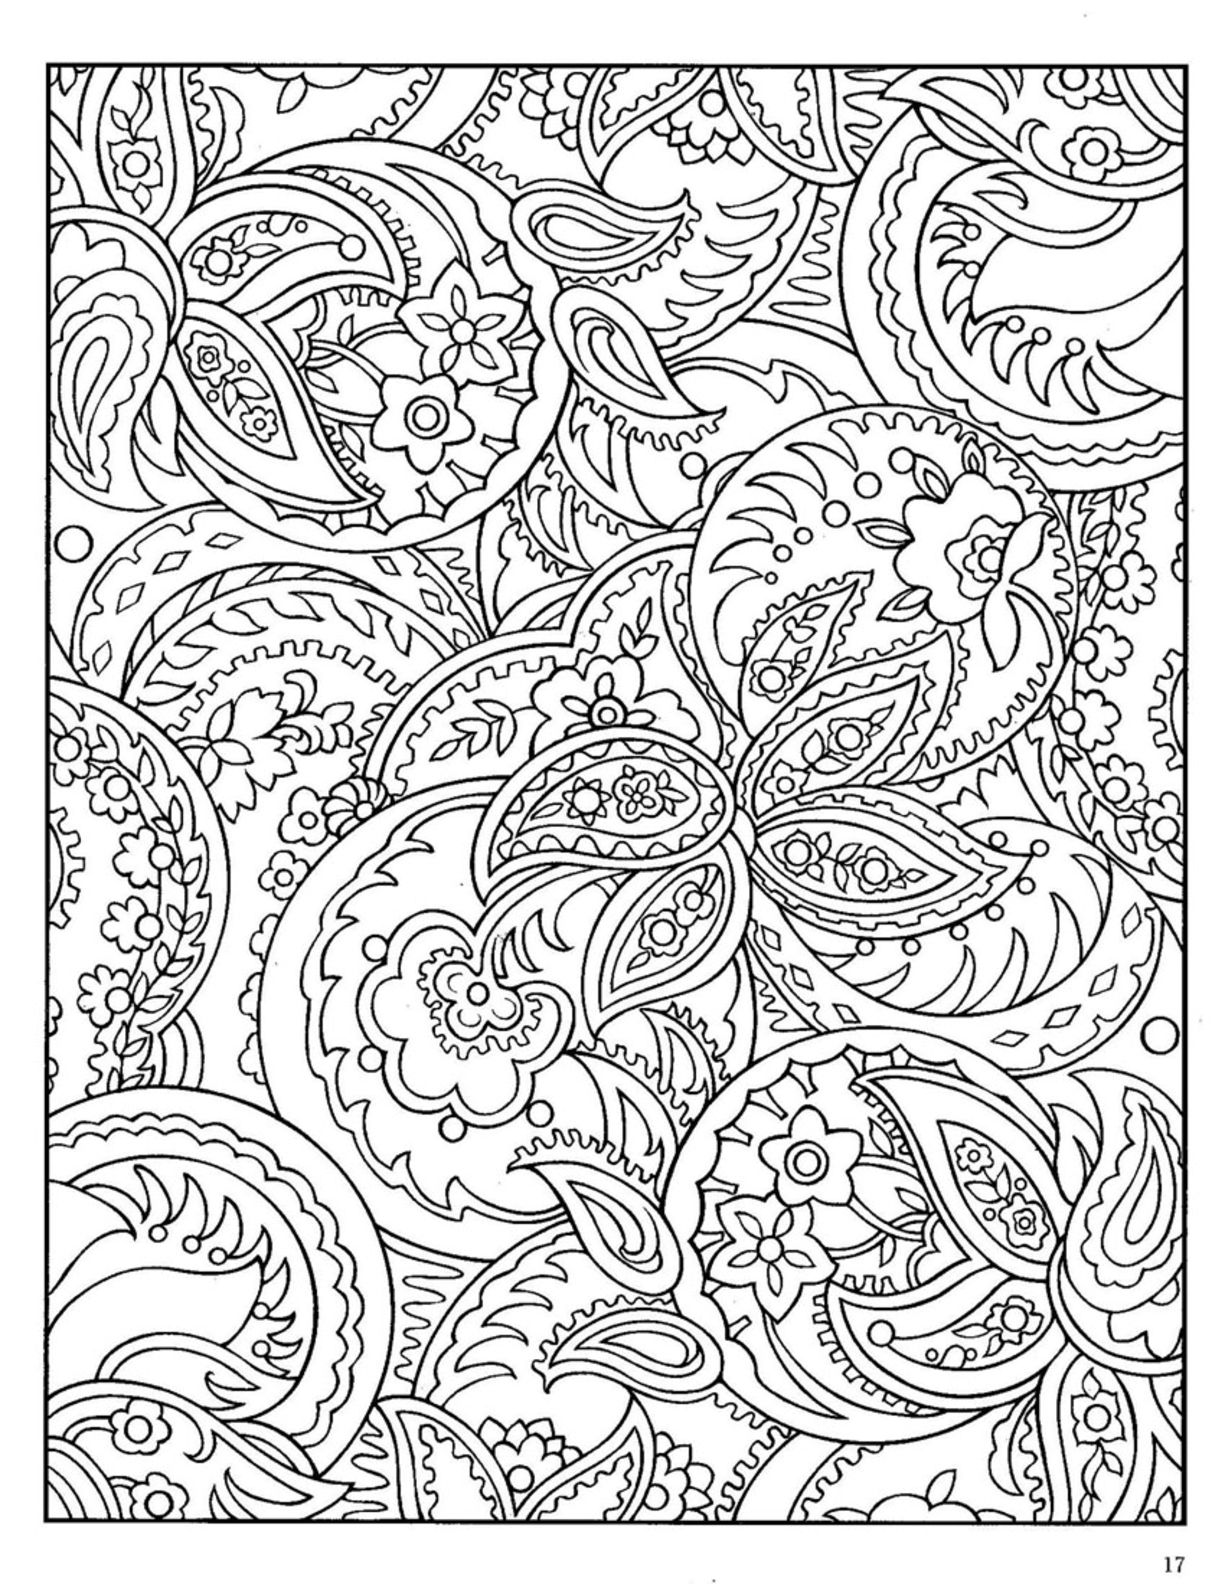 paisley abstract doodle zentangle coloring pages colouring adult detailed - Paisley Designs Coloring Book